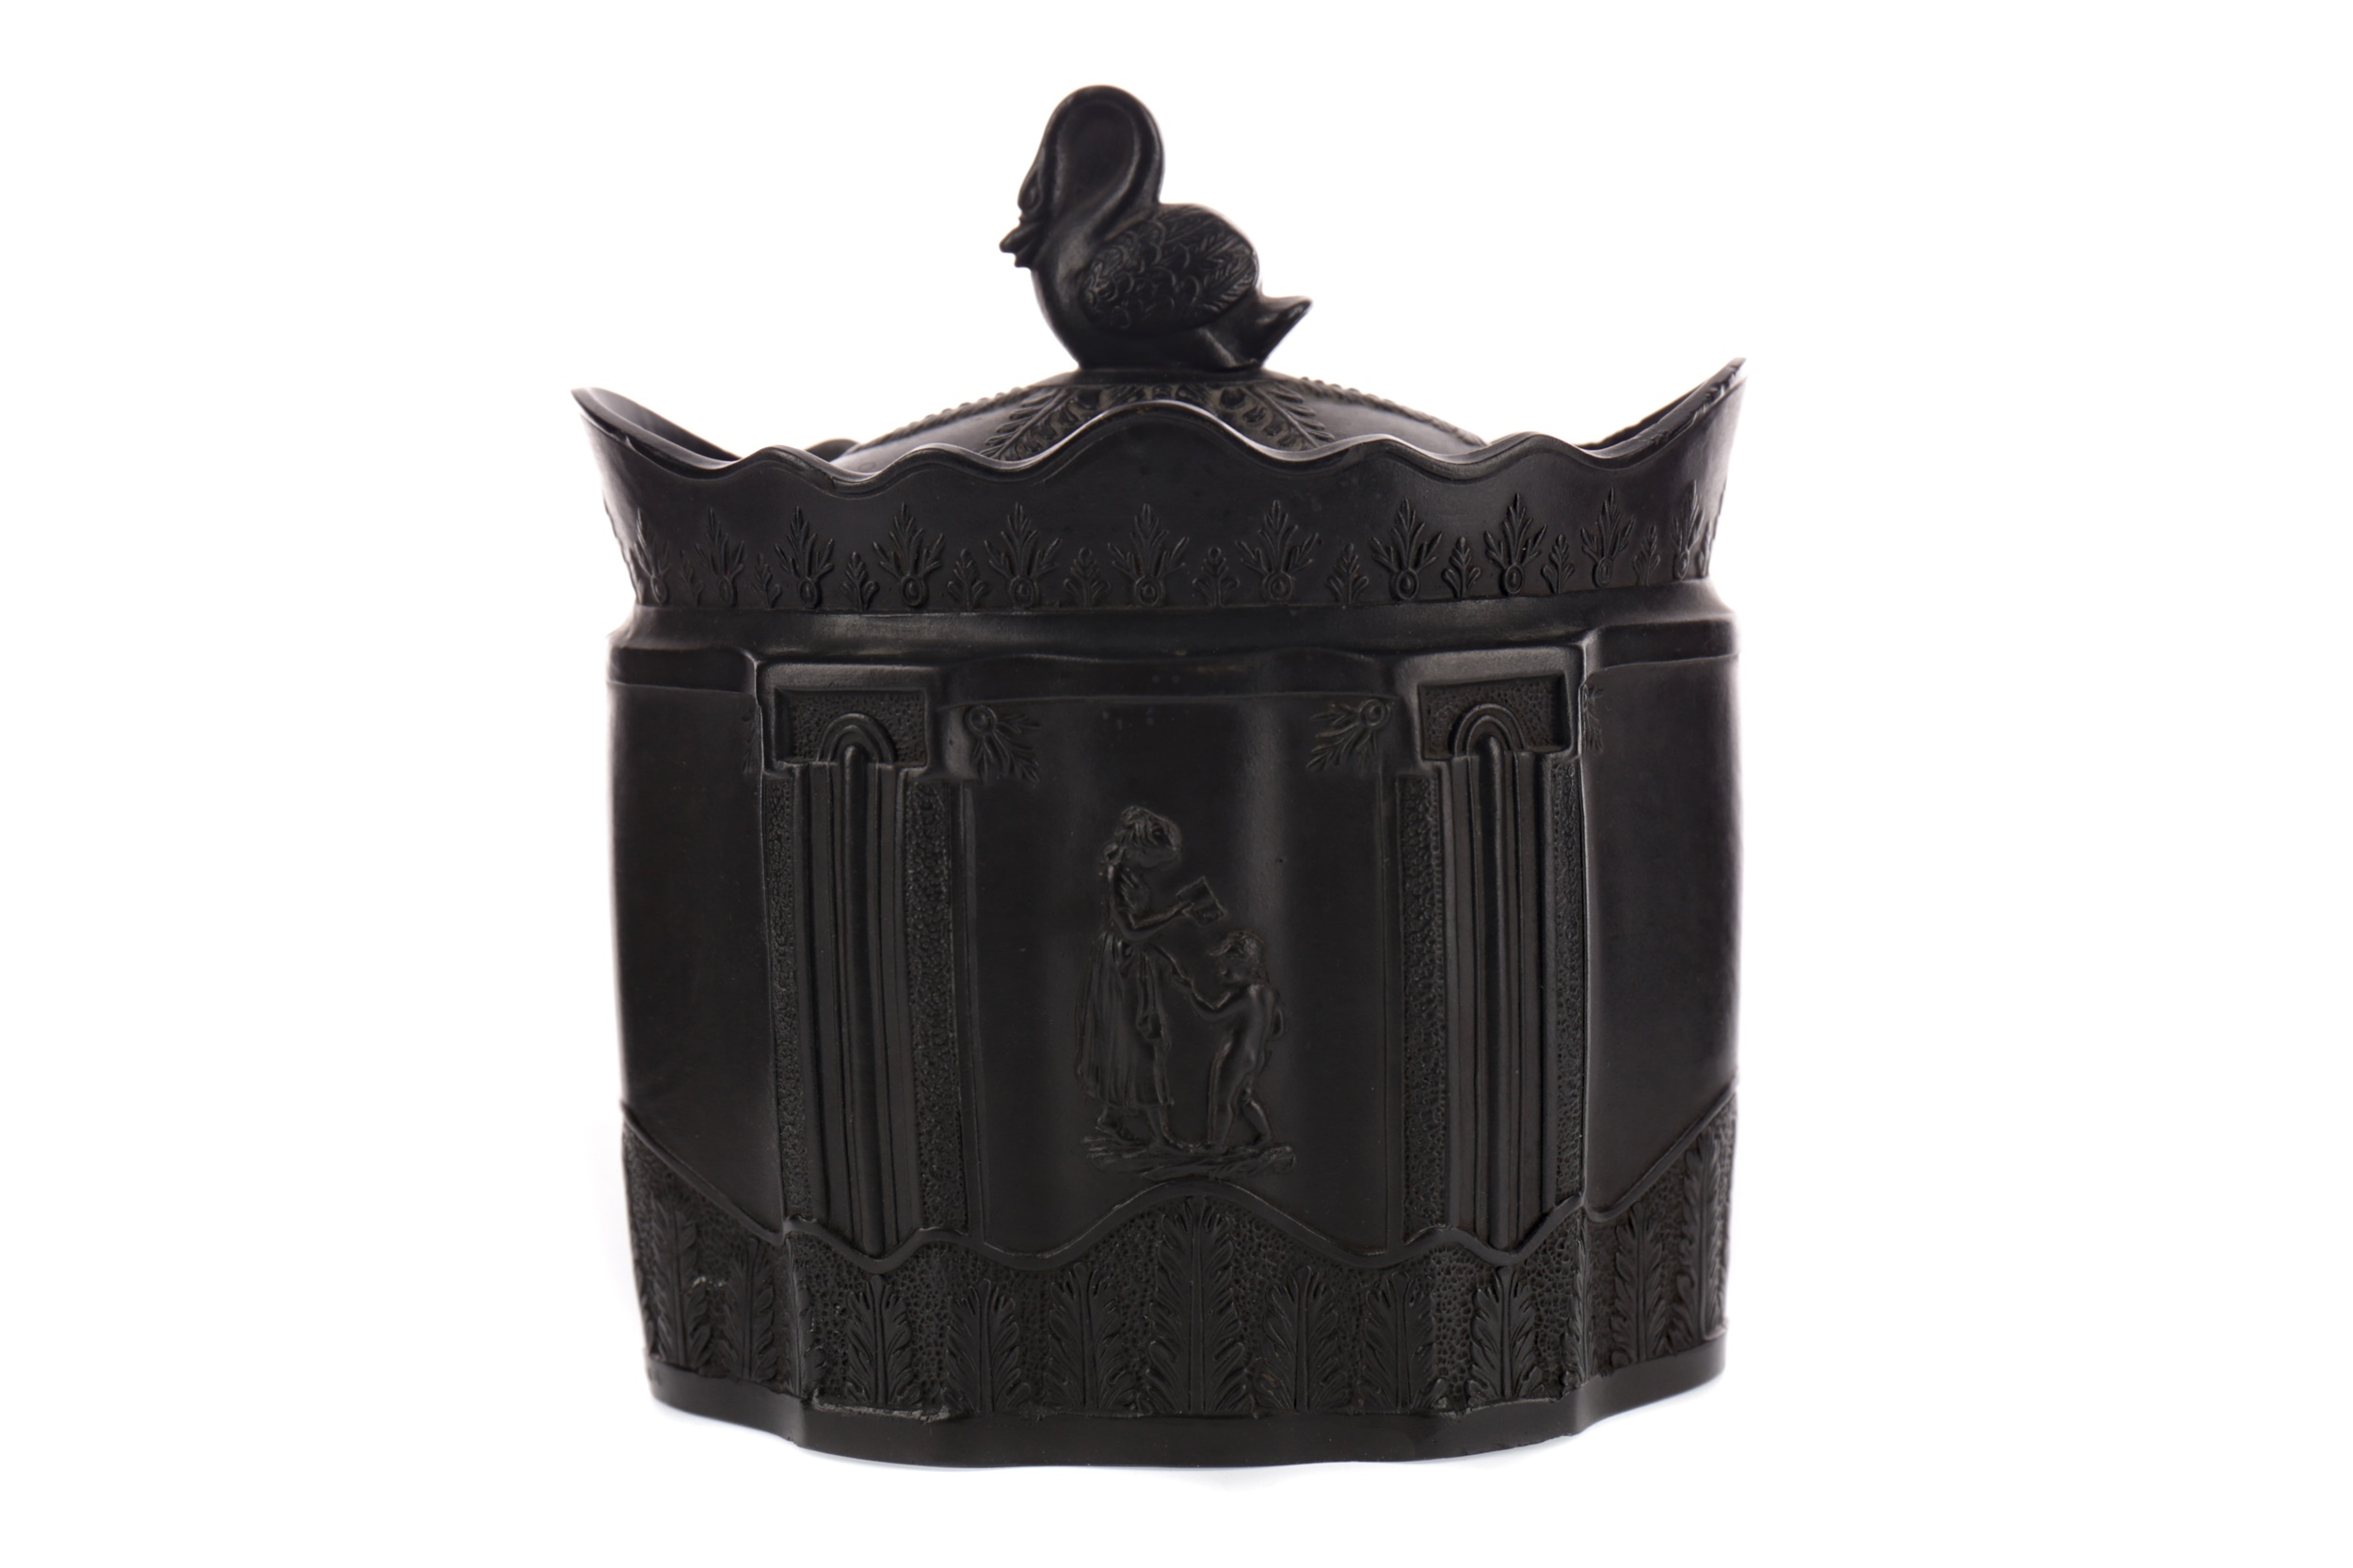 AN EARLY 19TH CENTURY EASTWOOD BLACK BASALT SUGAR BOWL AND COVER